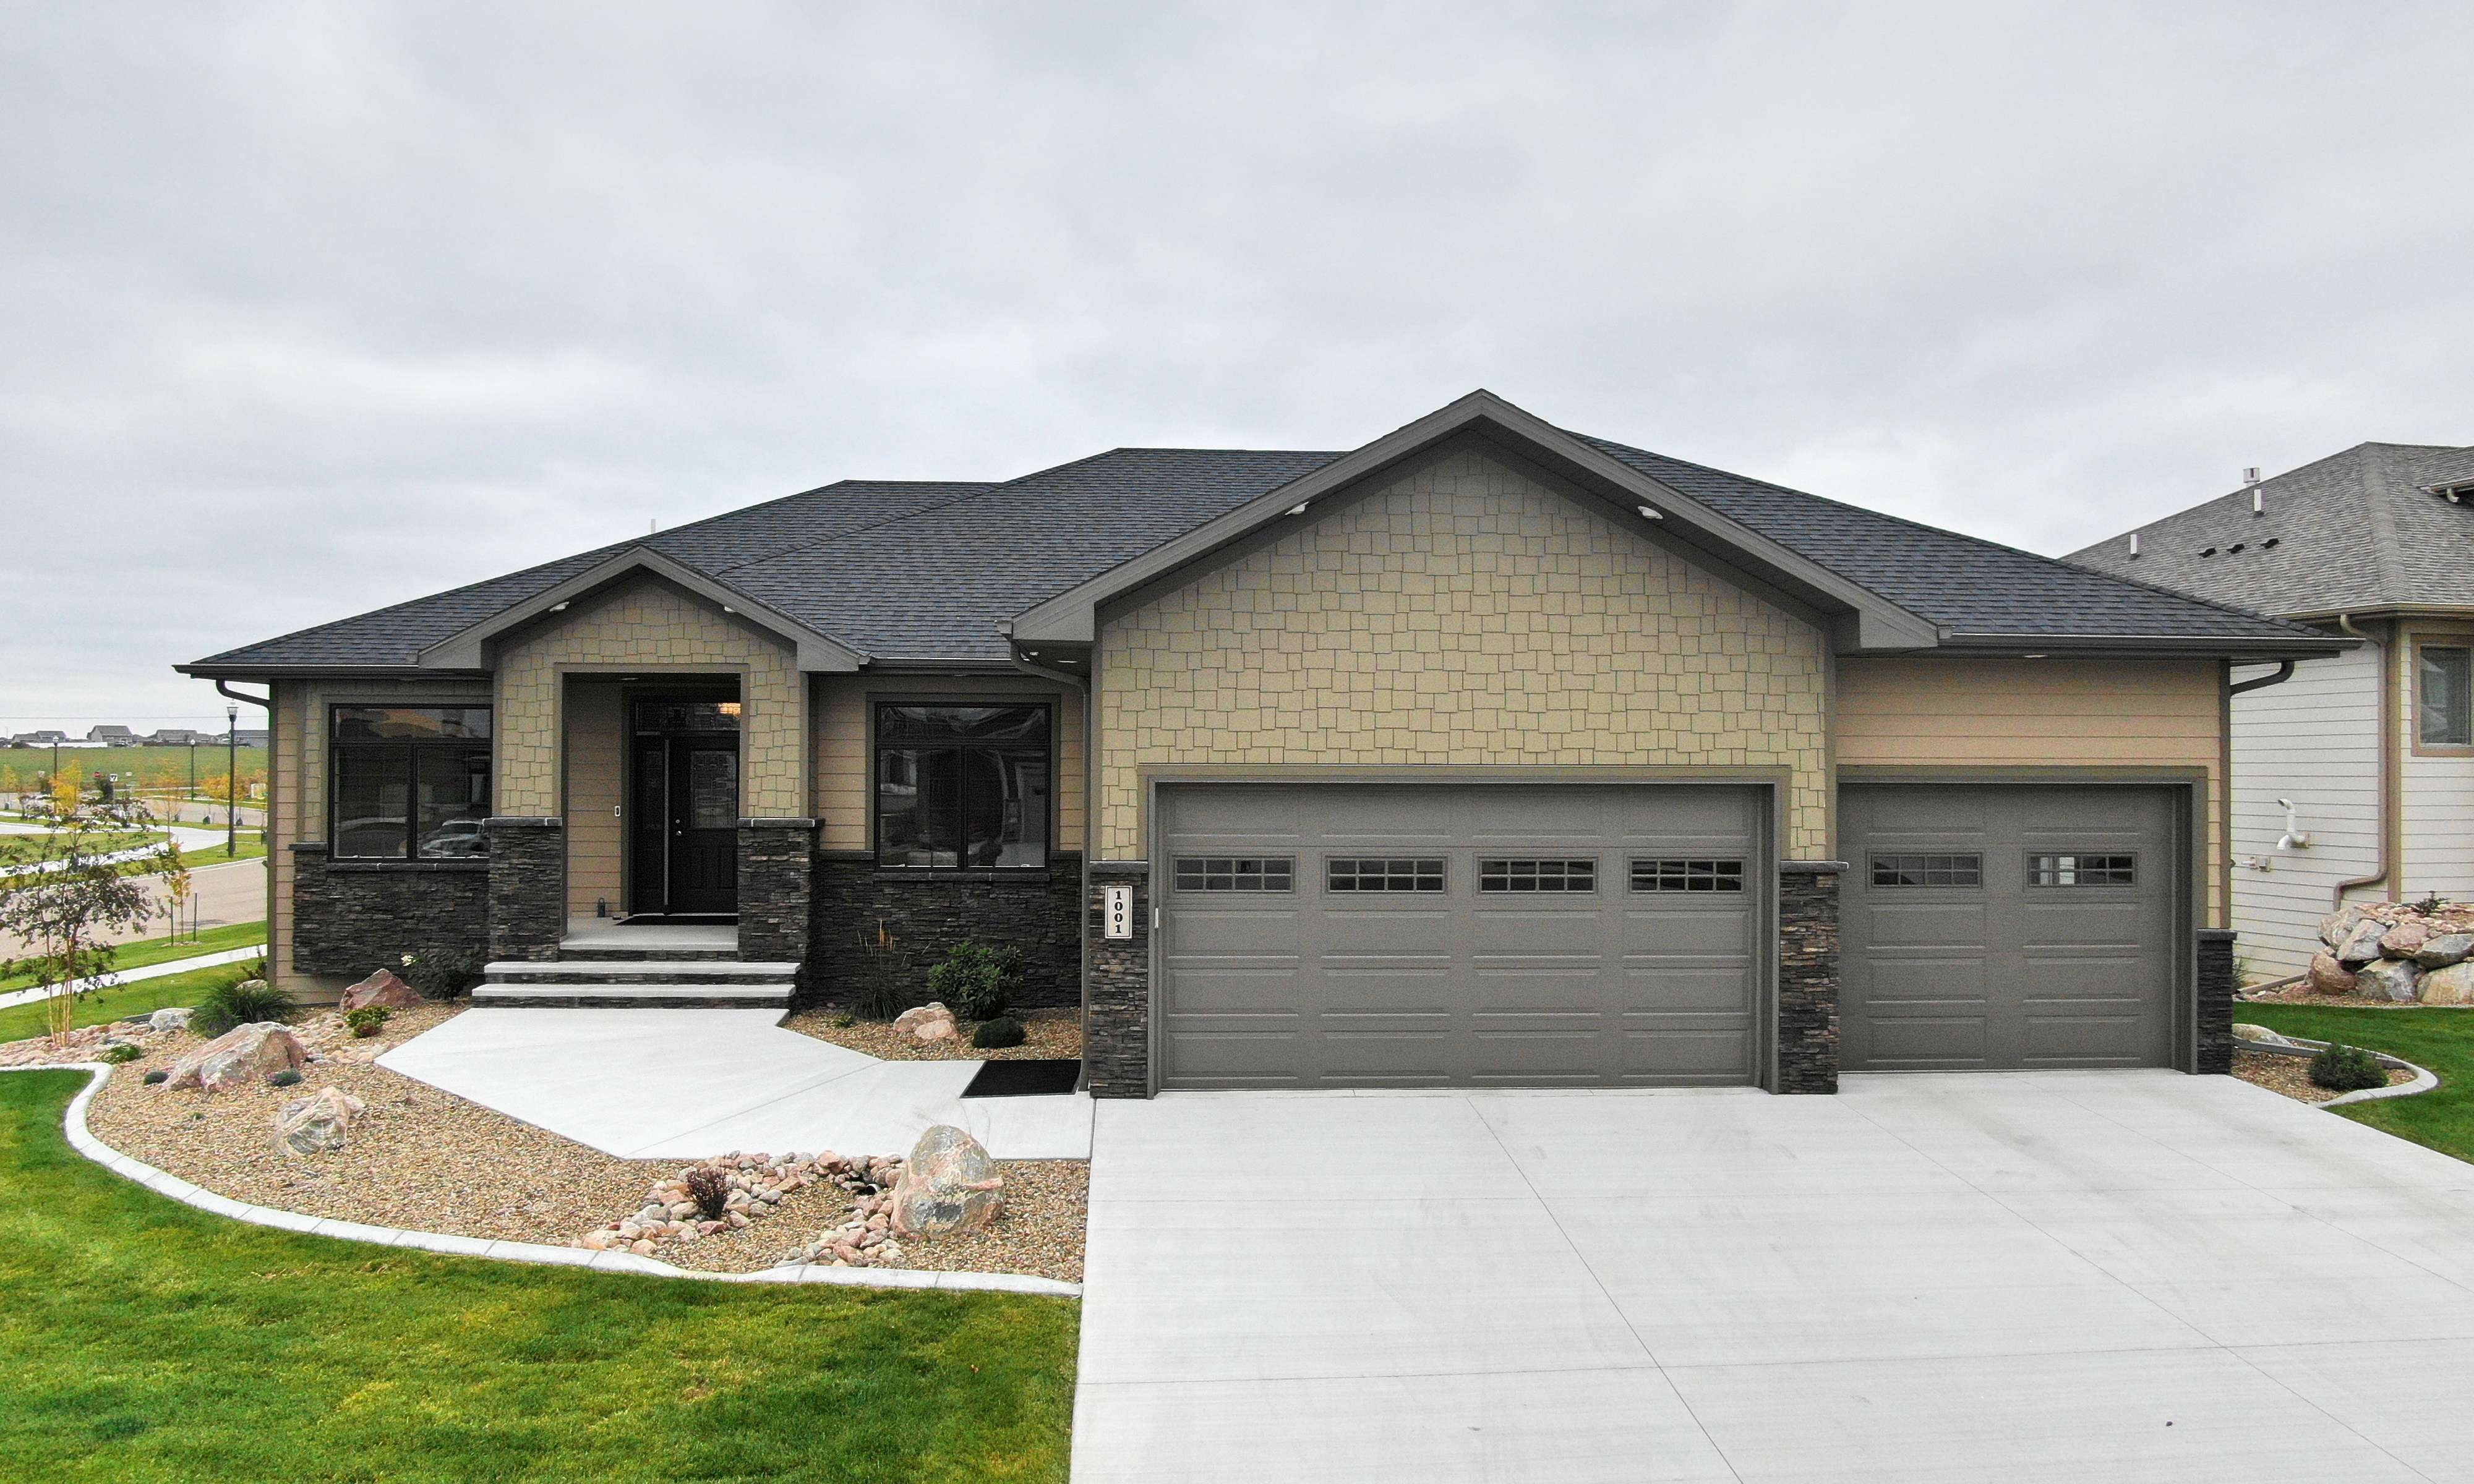 1001 Limited Lane - $574,900 with Landscaping